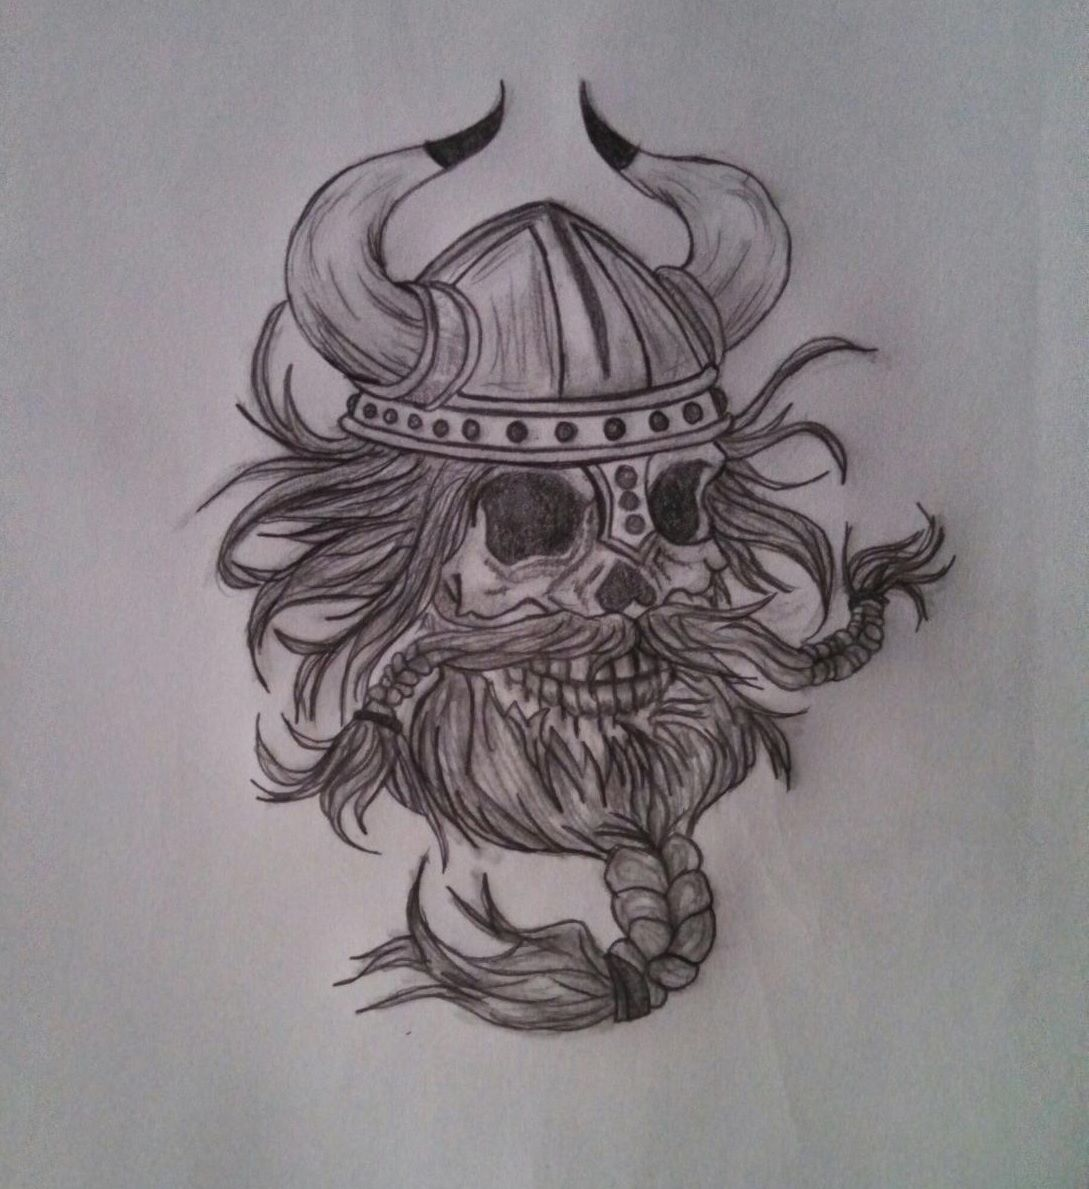 Drew this for my brother. Tattoo idea.